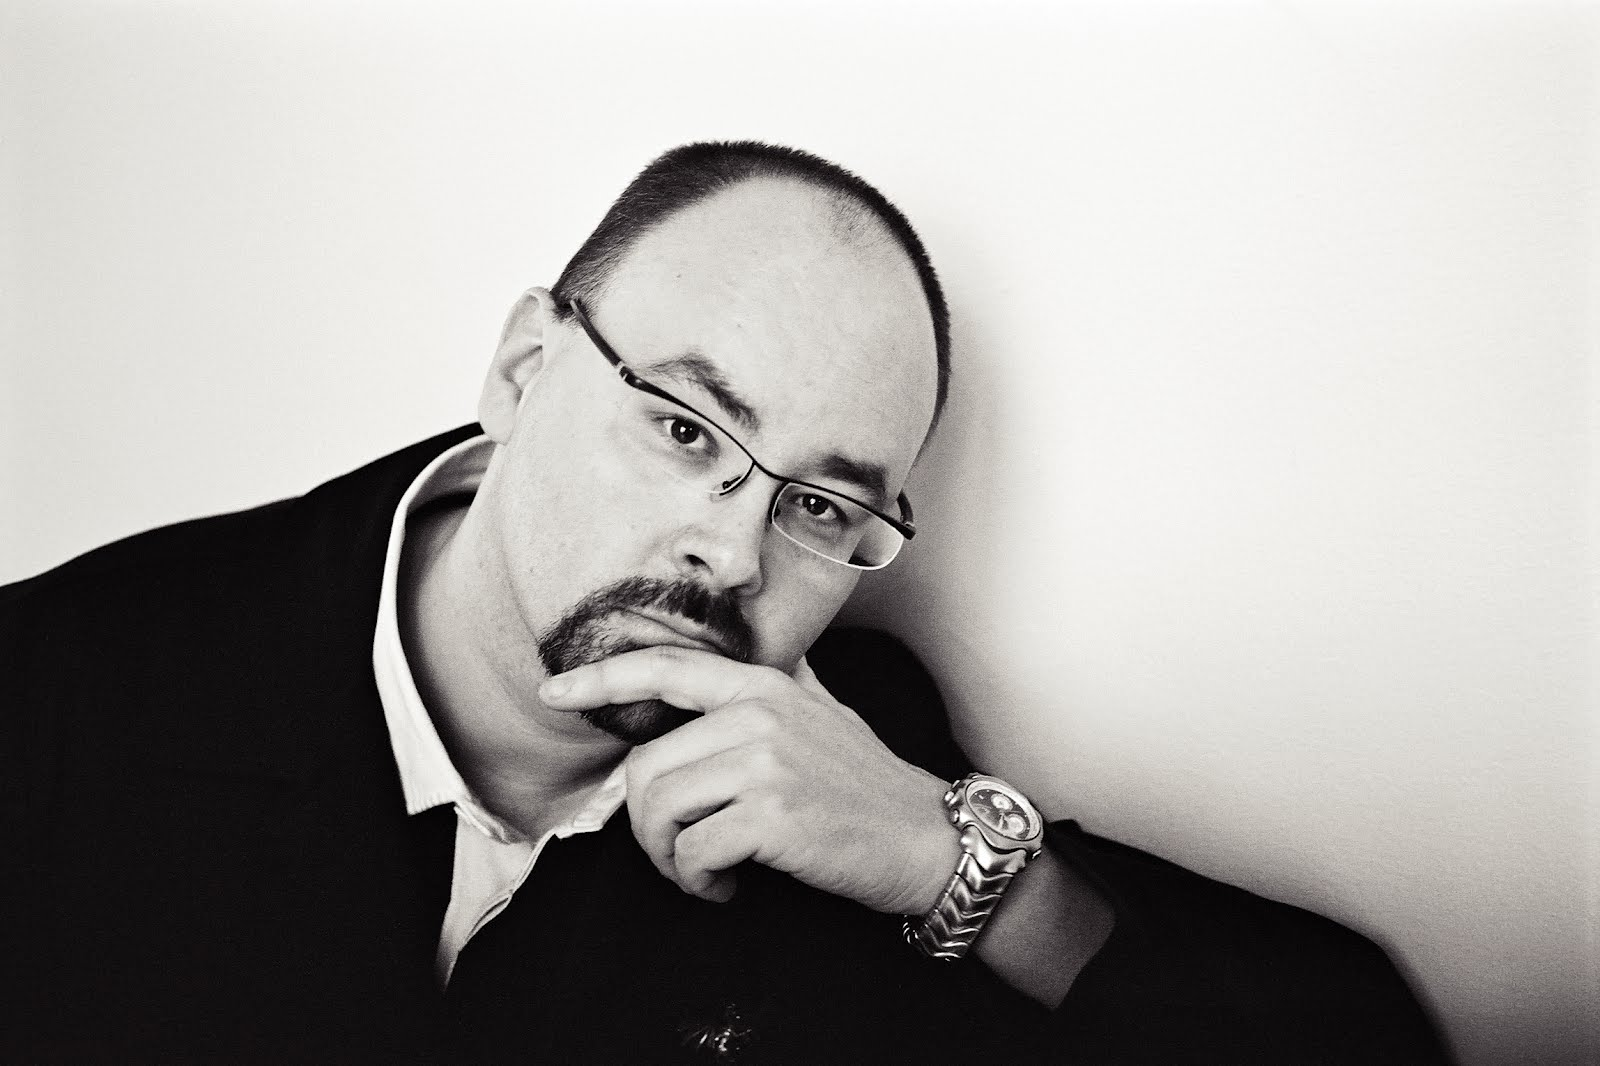 Author Carlos Ruiz Zafon comes to Montgomery Village